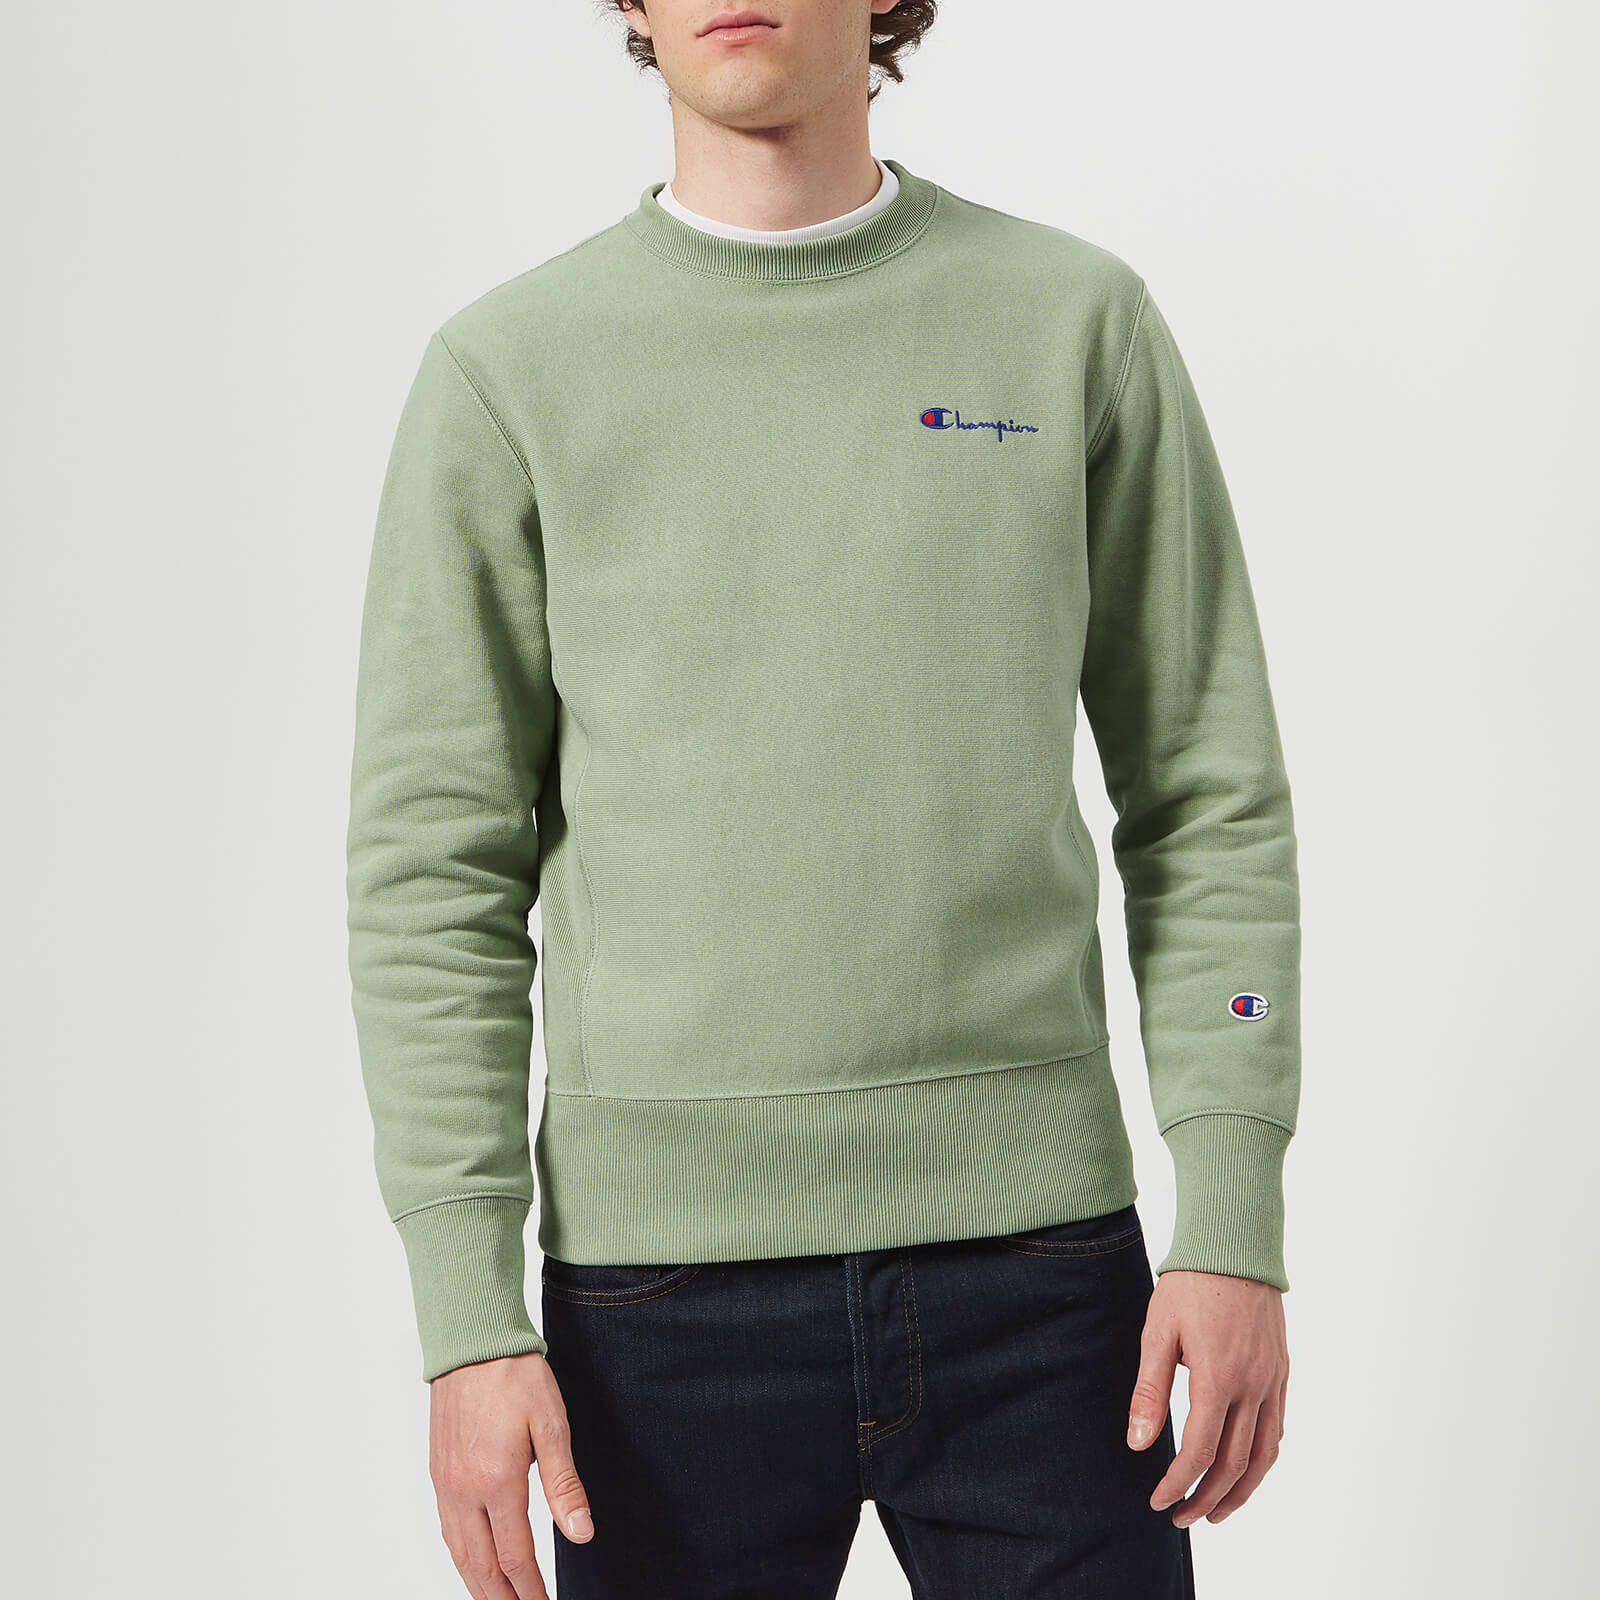 f15e33de9 Champion Men's Crew Neck Sweatshirt - Green - Free UK Delivery over £50